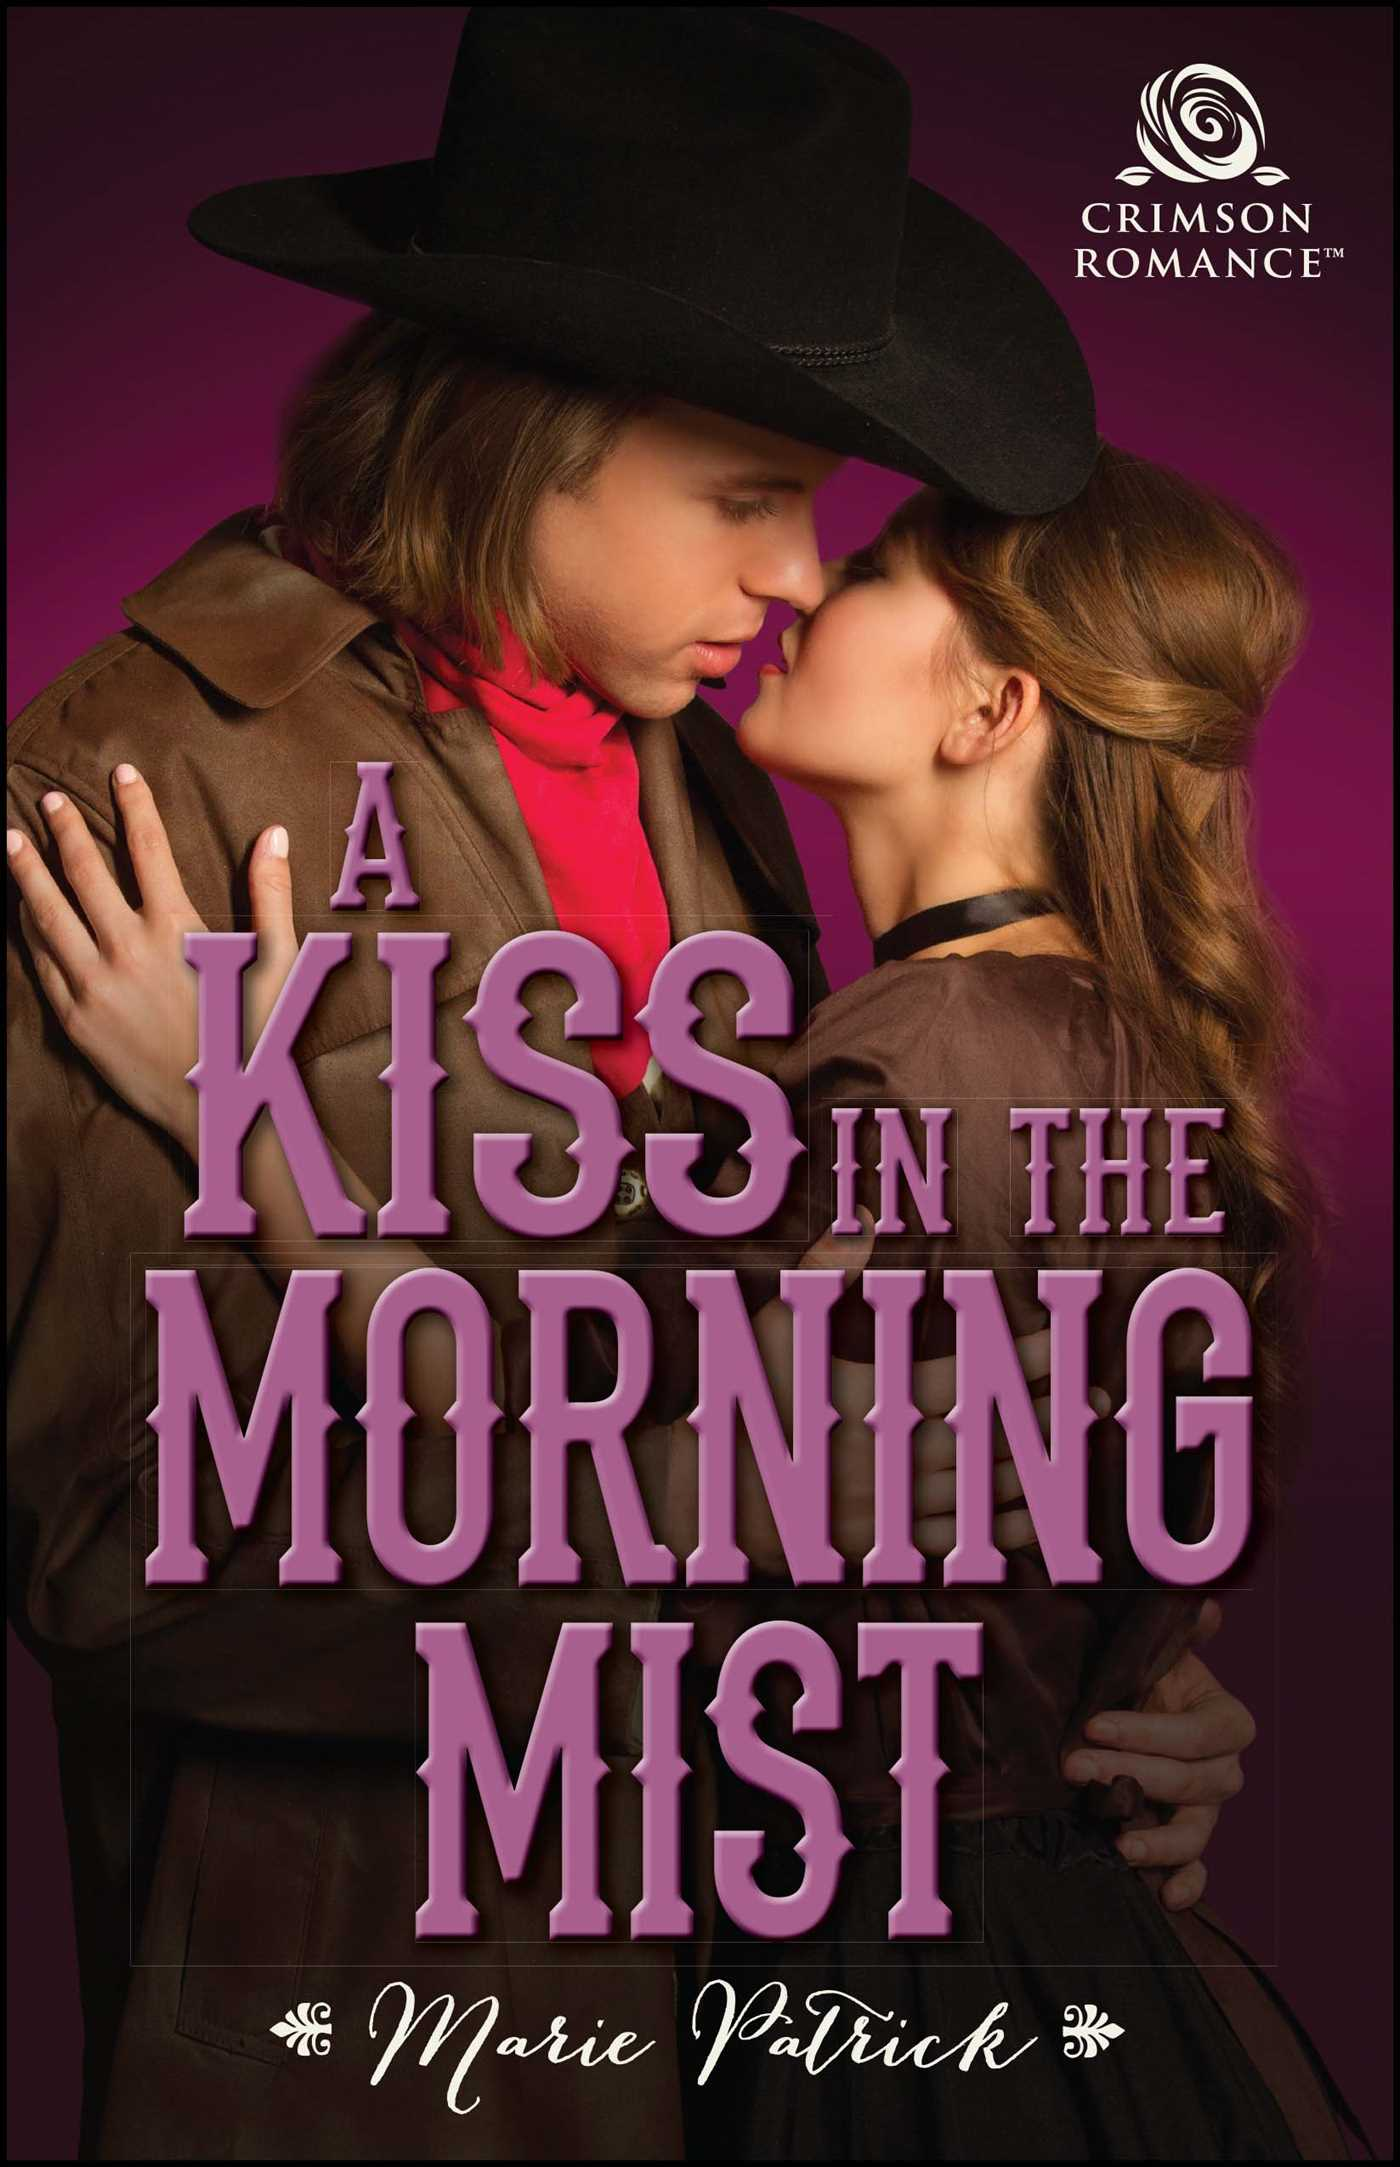 A kiss in the morning mist 9781507206201 hr